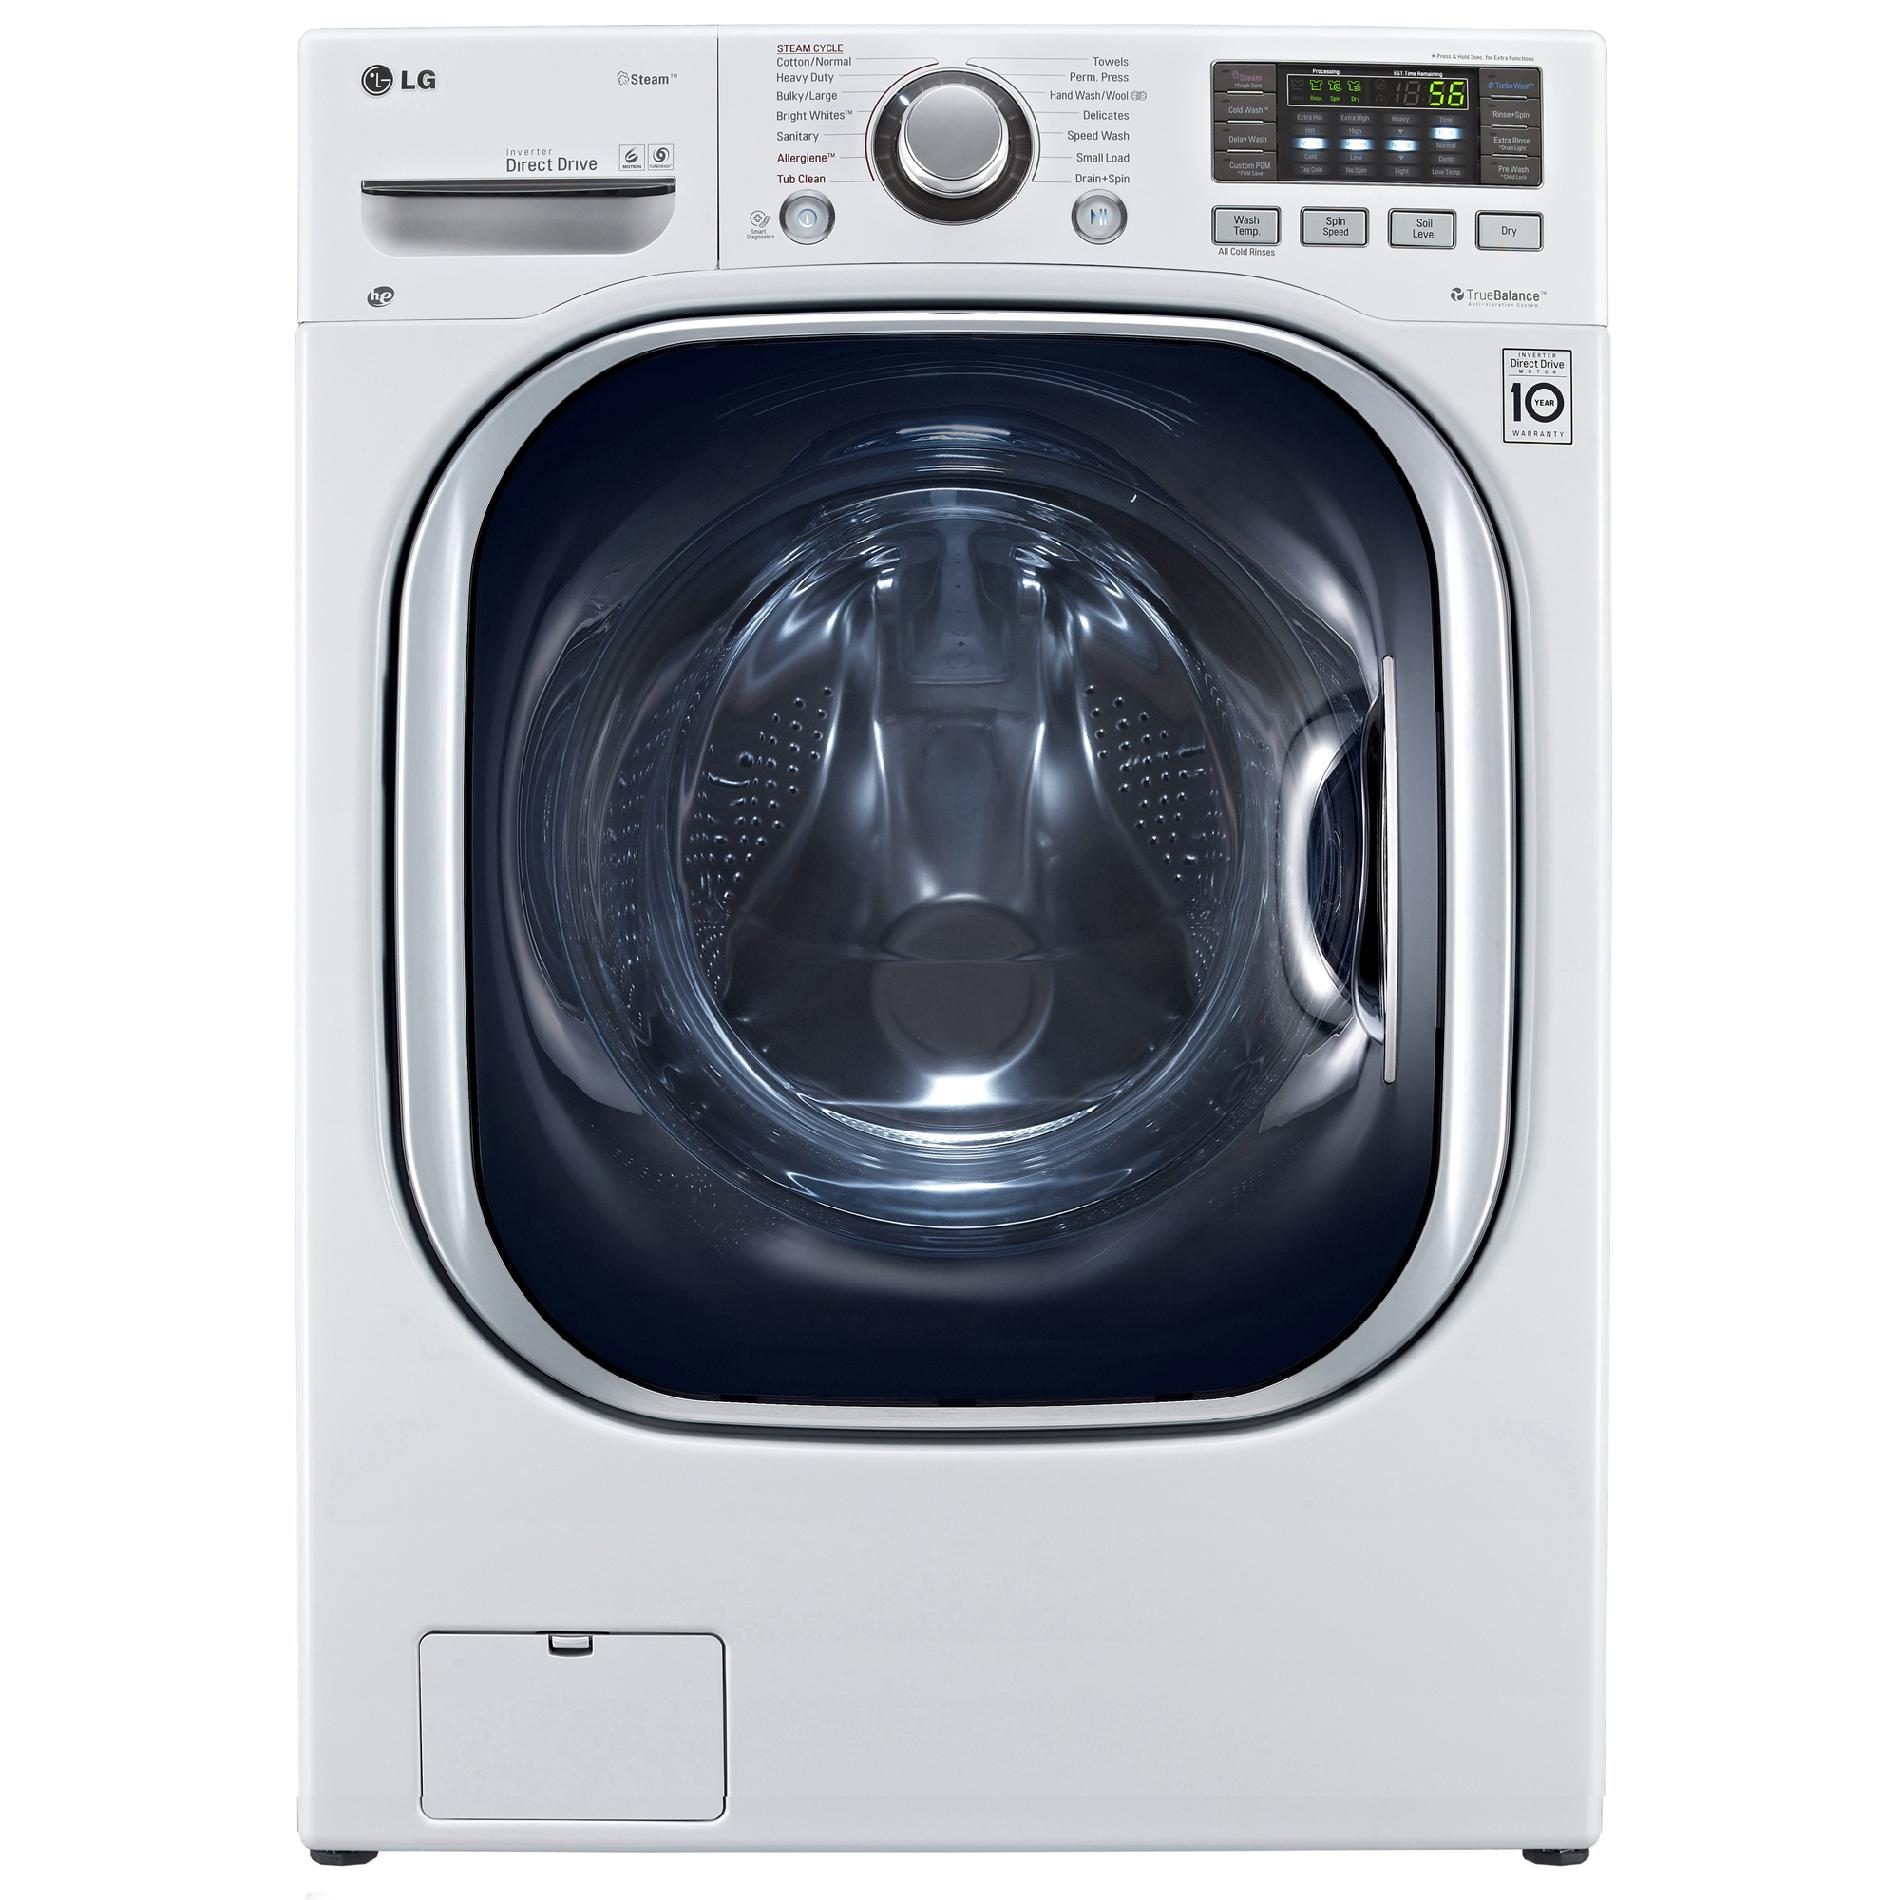 medium resolution of  electric dryer i have a sears kenmore electric dryer model 110 on kenmore sears kenmore electric dryer wiring diagram